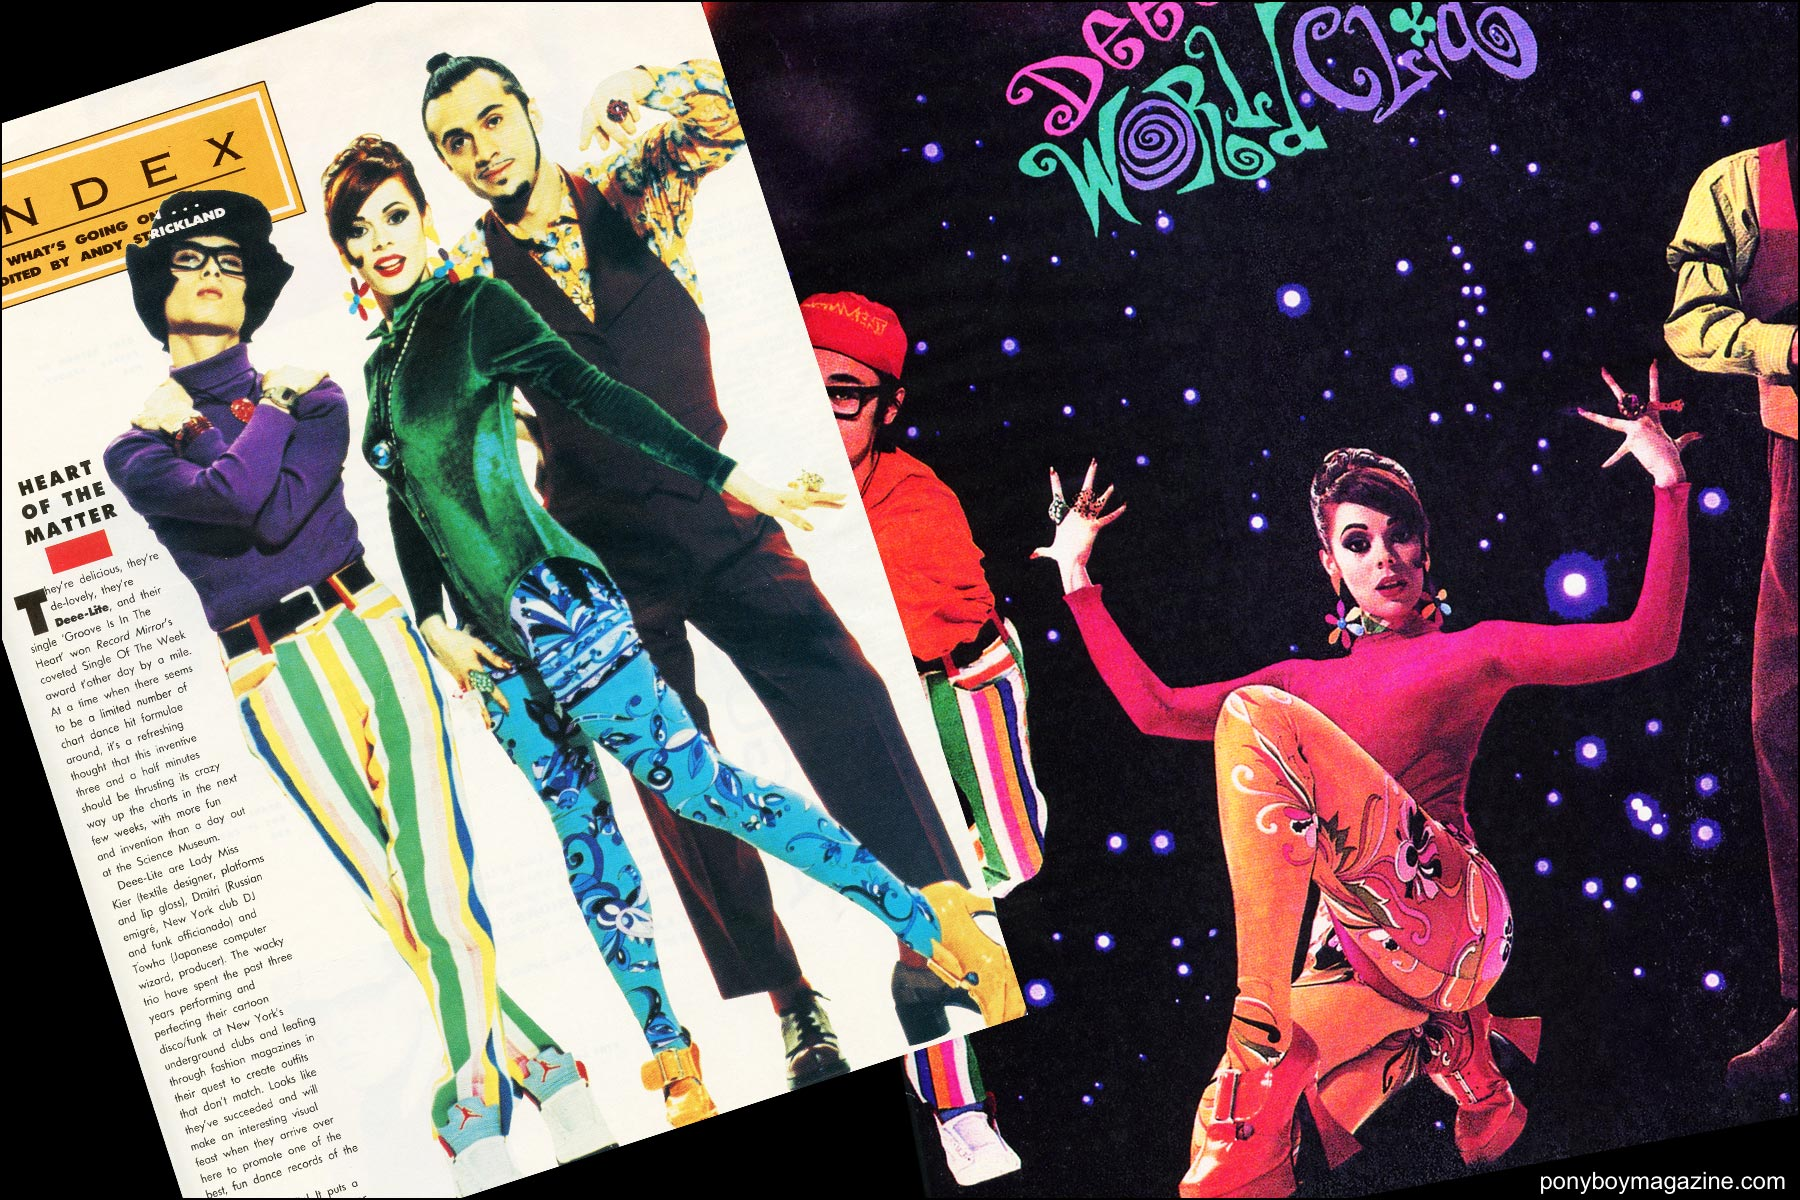 Deee-lite wearing Maria Ayala jewelry for their first album release. Ponyboy magazine NY.